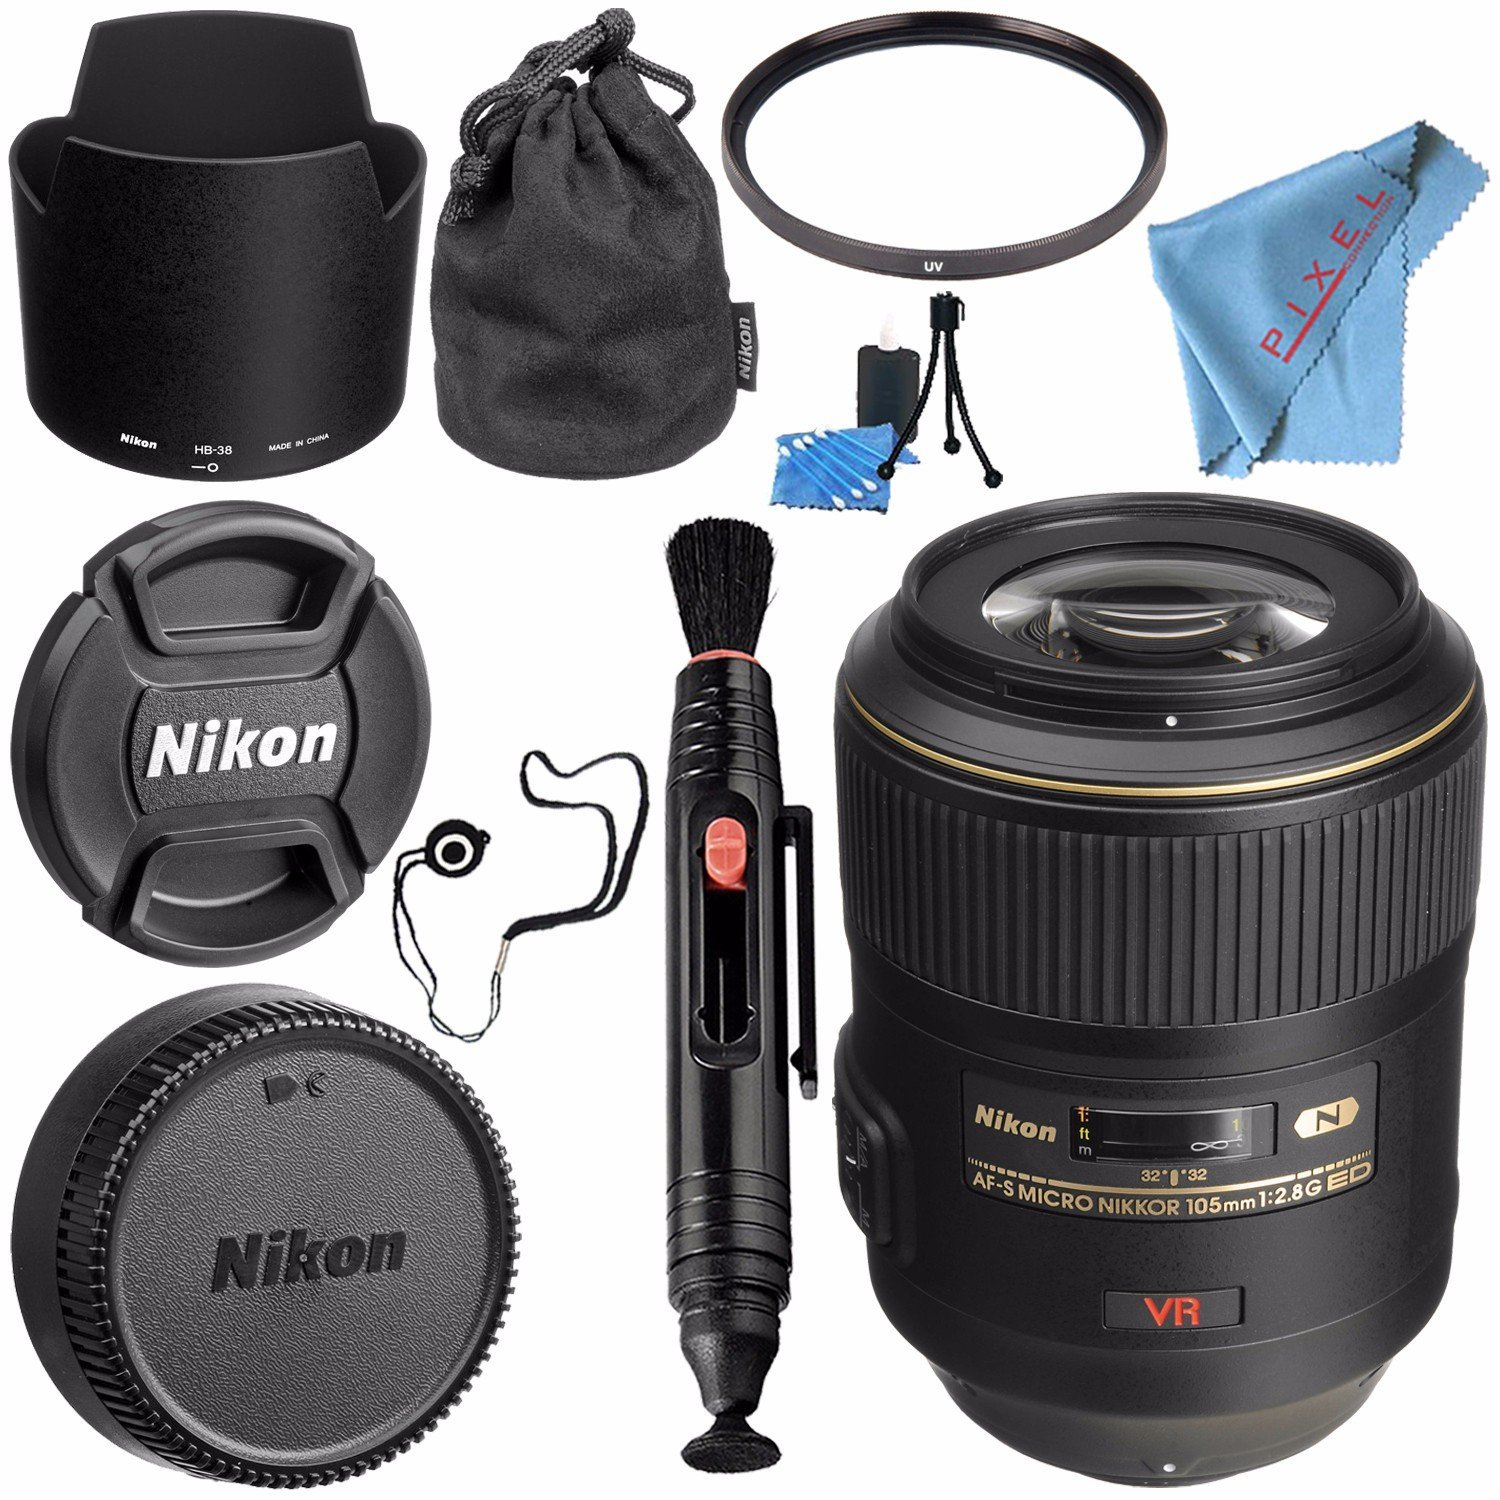 Nikon AF-S VR Micro-NIKKOR 105mm f/2.8G IF-ED Lens 2160 + 62mm UV Filter + Lens Pen Cleaner + Fibercloth + Lens Capkeeper + Lens Cleaning Kit Bundle